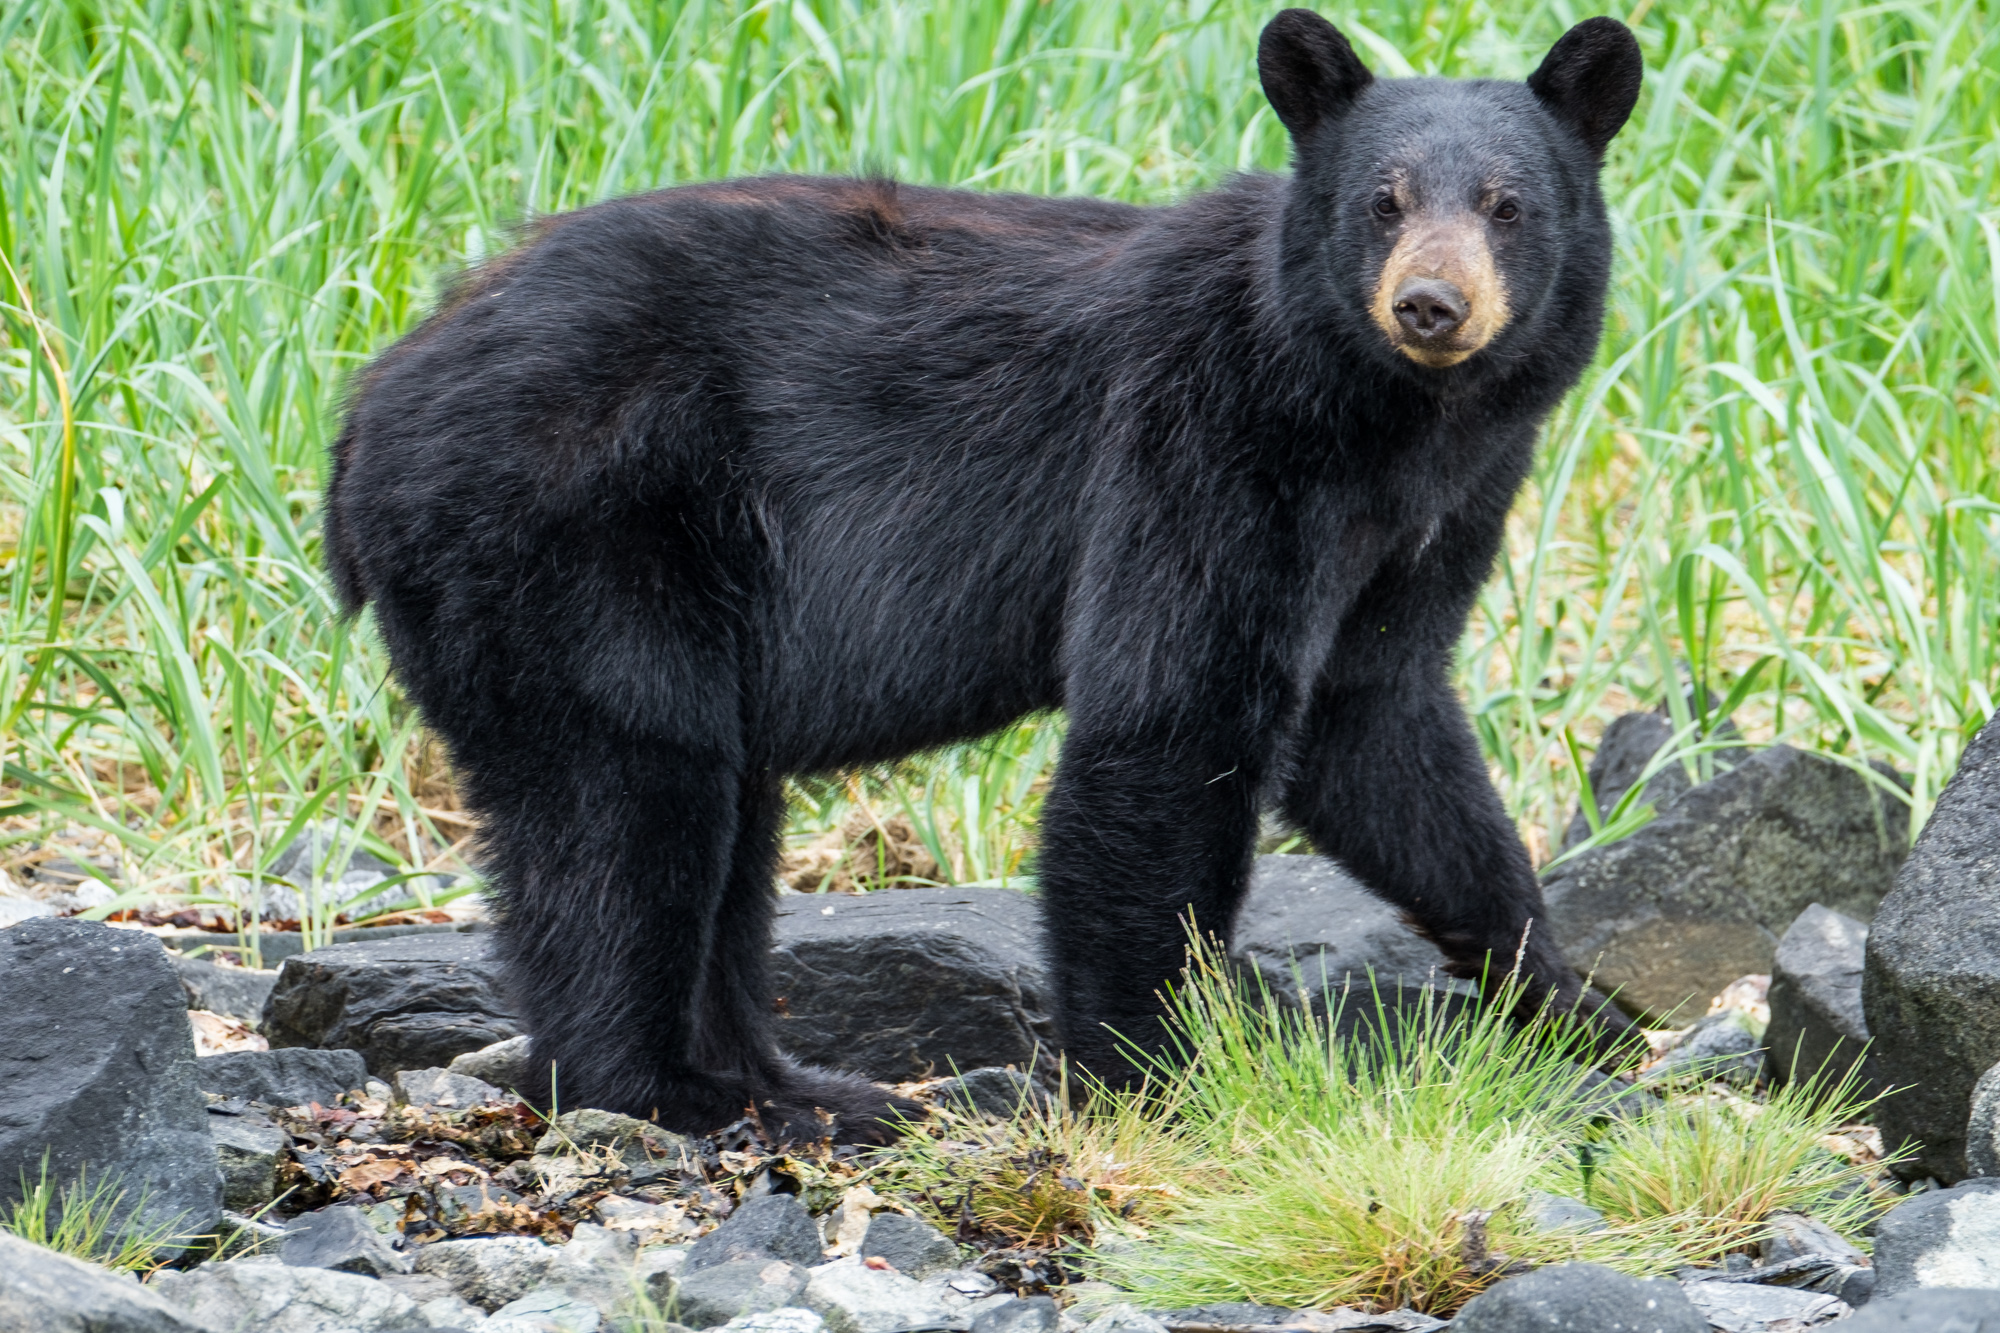 A sow black bear in Glacier Bay National Park in Alaska.